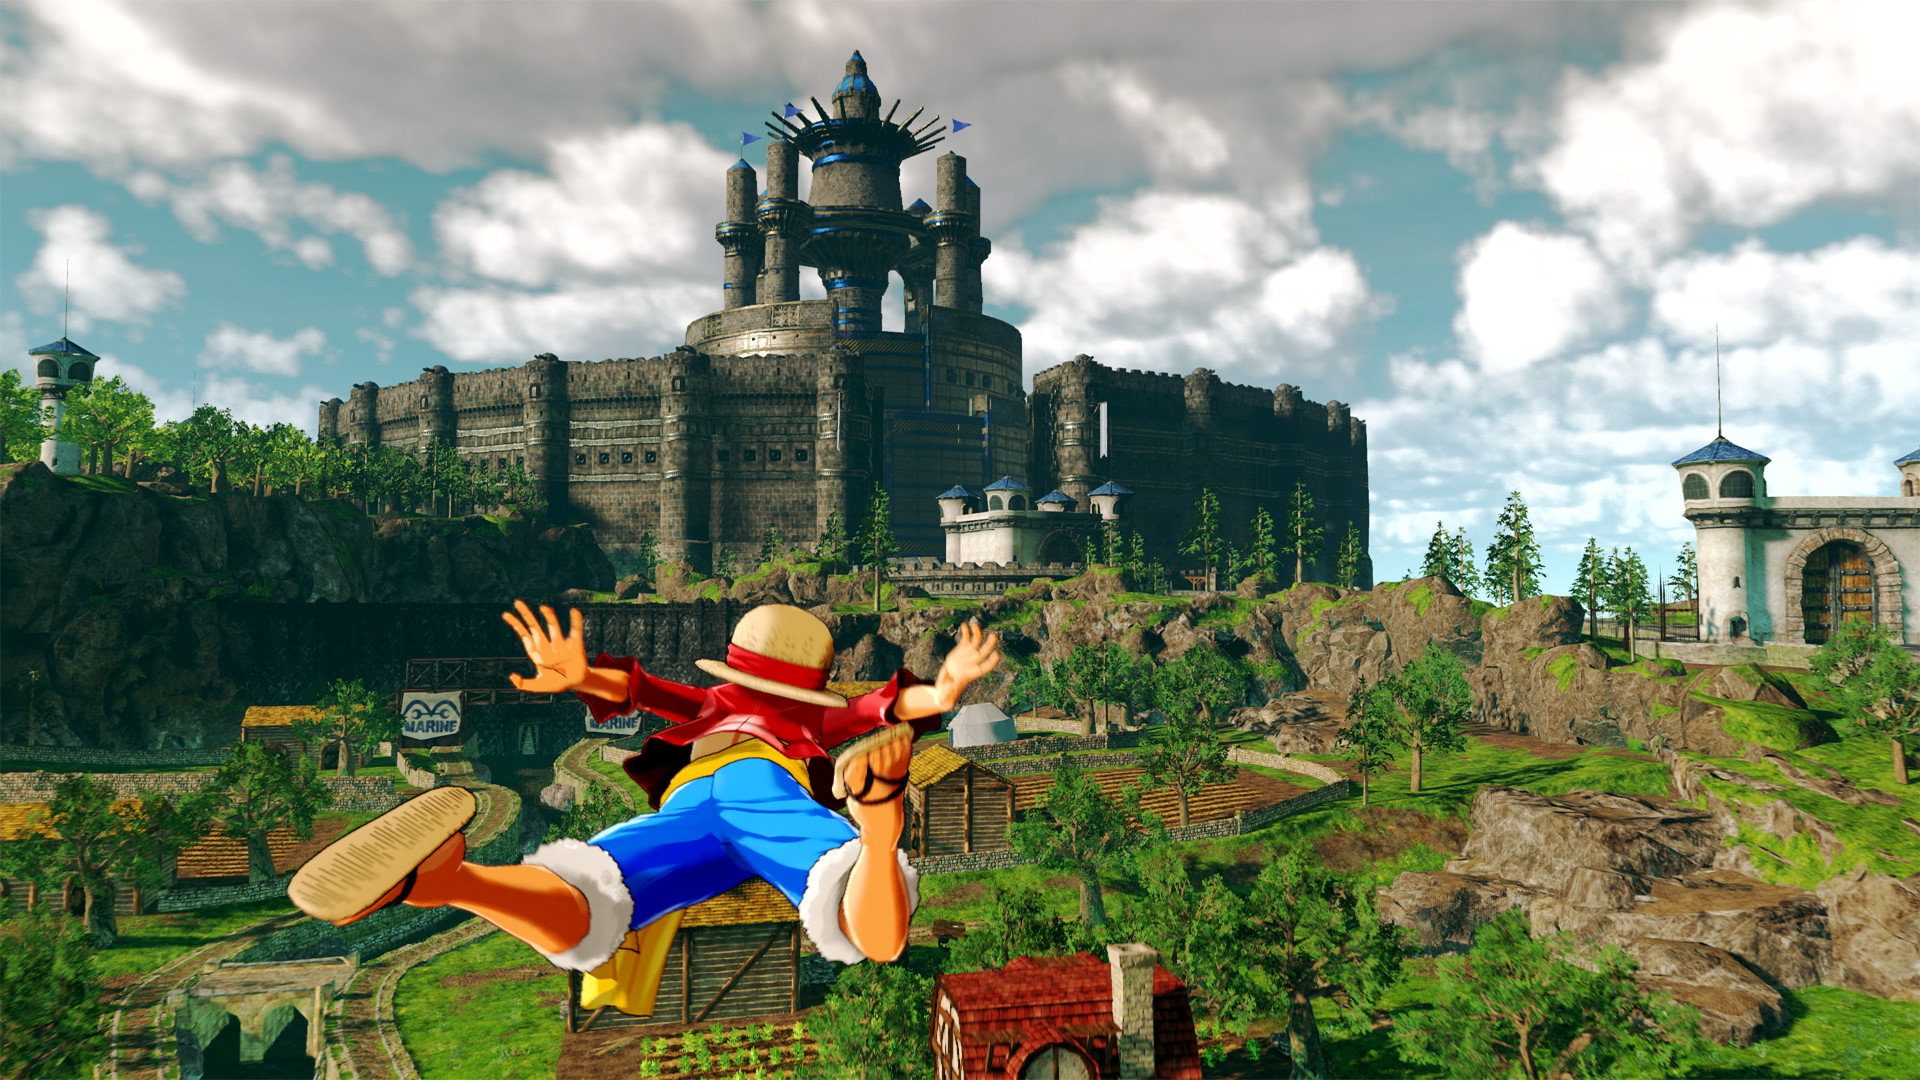 Link Tải Game ONE PIECE World Seeker miễn phí